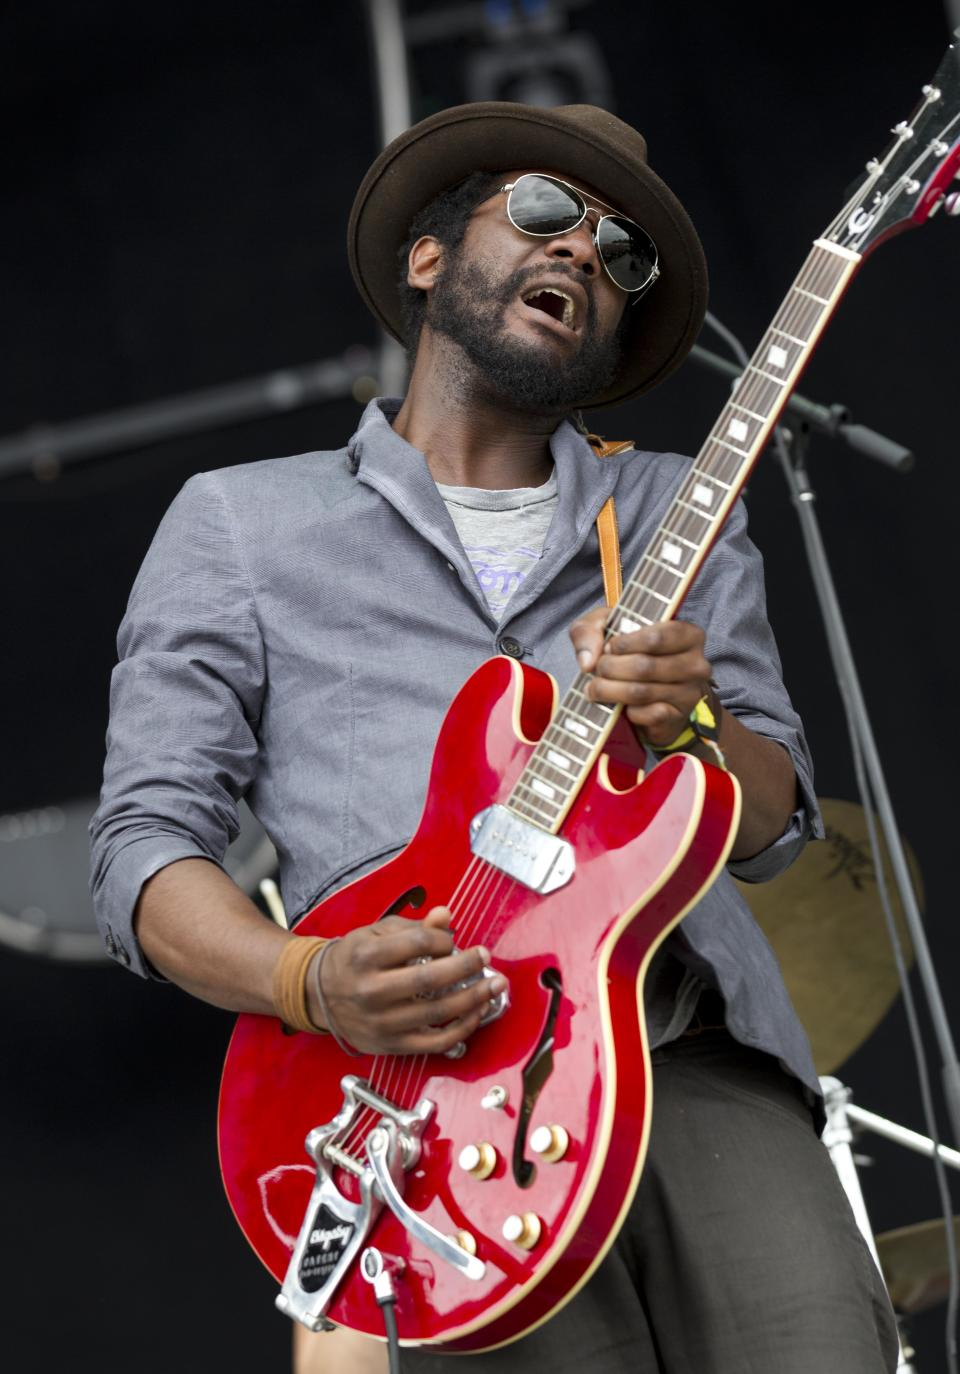 Gary Clark Jr. performs during the Bonnaroo Music and Arts Festival in Manchester, Tenn., Sunday, June 10, 2012. (AP Photo/Dave Martin)